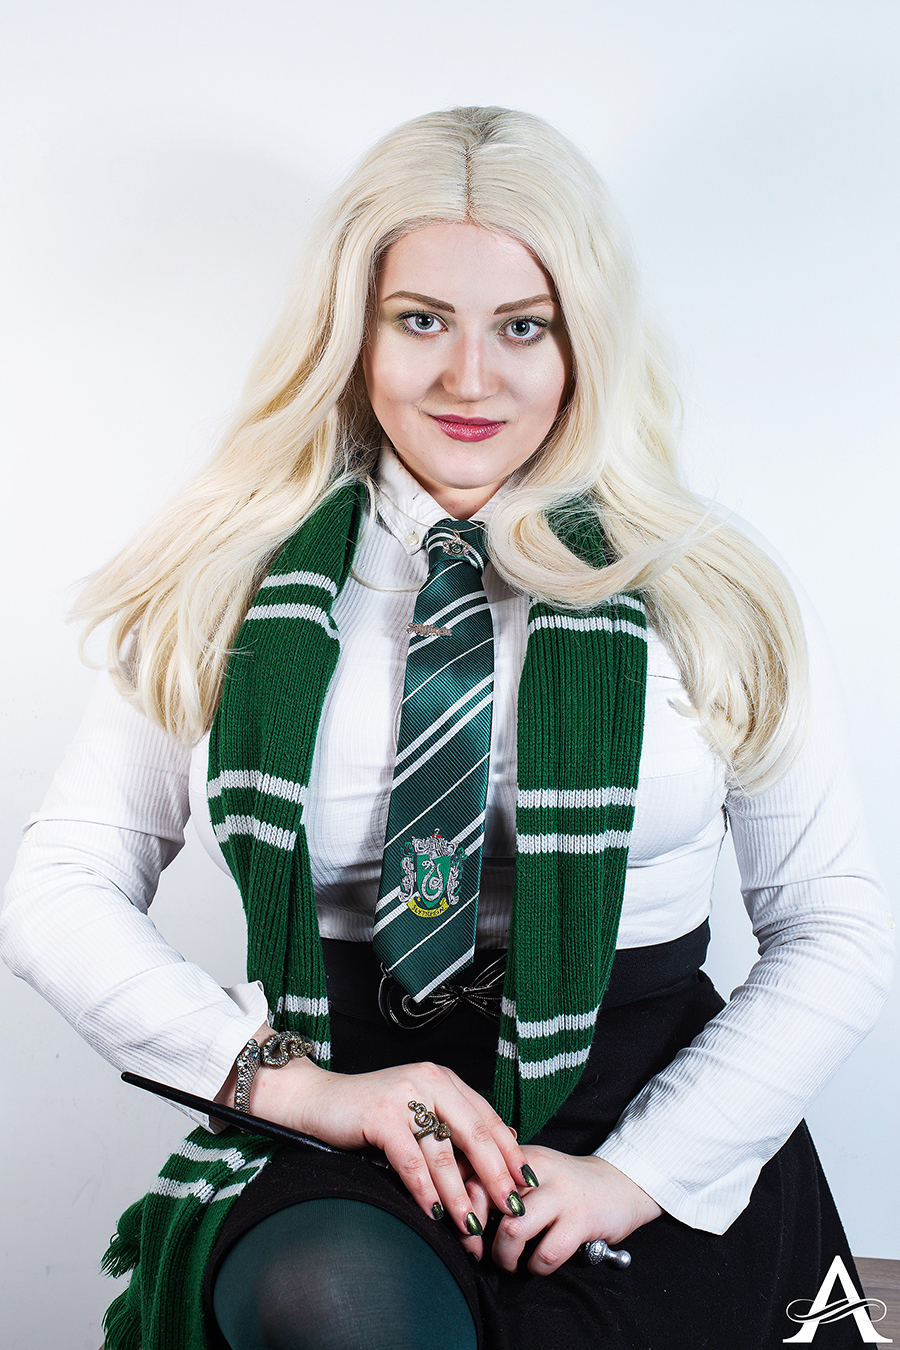 Slytherin / Photography by ~~Alucard~~ Photography / Uploaded 18th April 2019 @ 10:41 PM